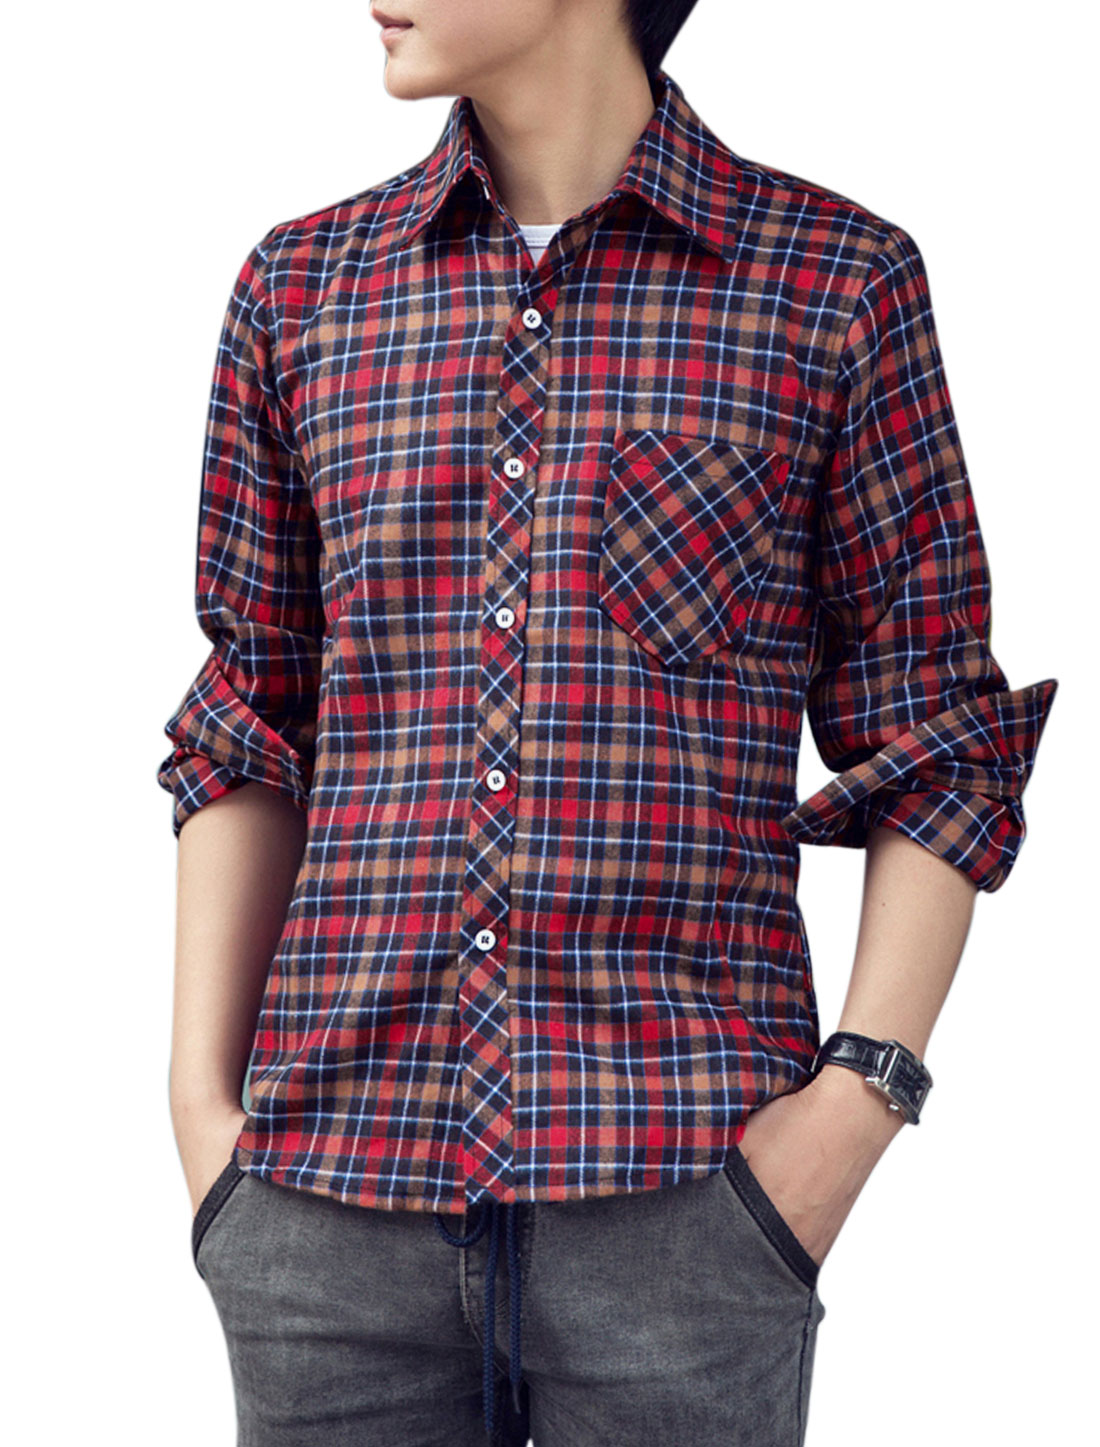 Men Leisure All Over Plaids Breast Pocket Single Breasted Shirt Red Khaki M